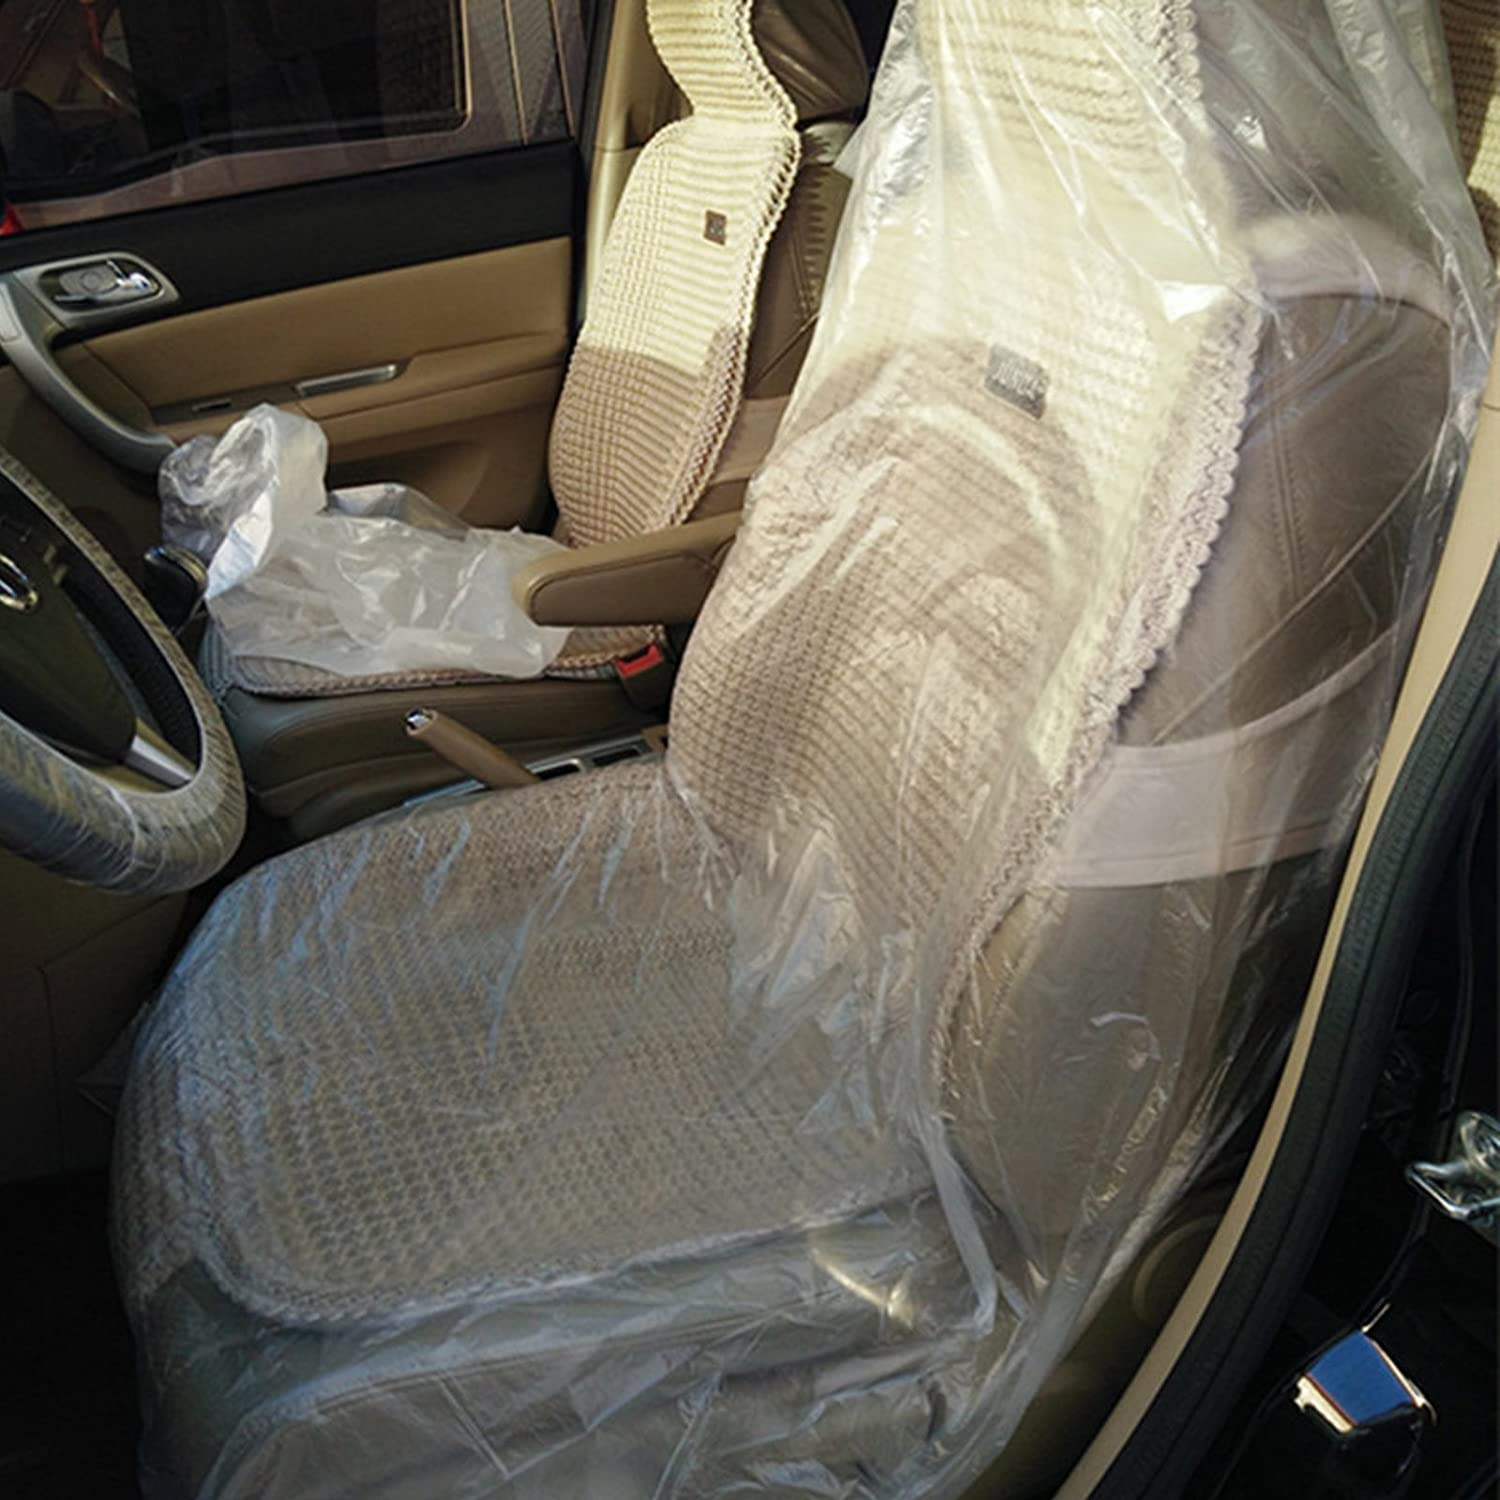 AllTrade Direct 2 x Premium Disposable Plastic White Car Seat Covers 15 Micron Protective Valet